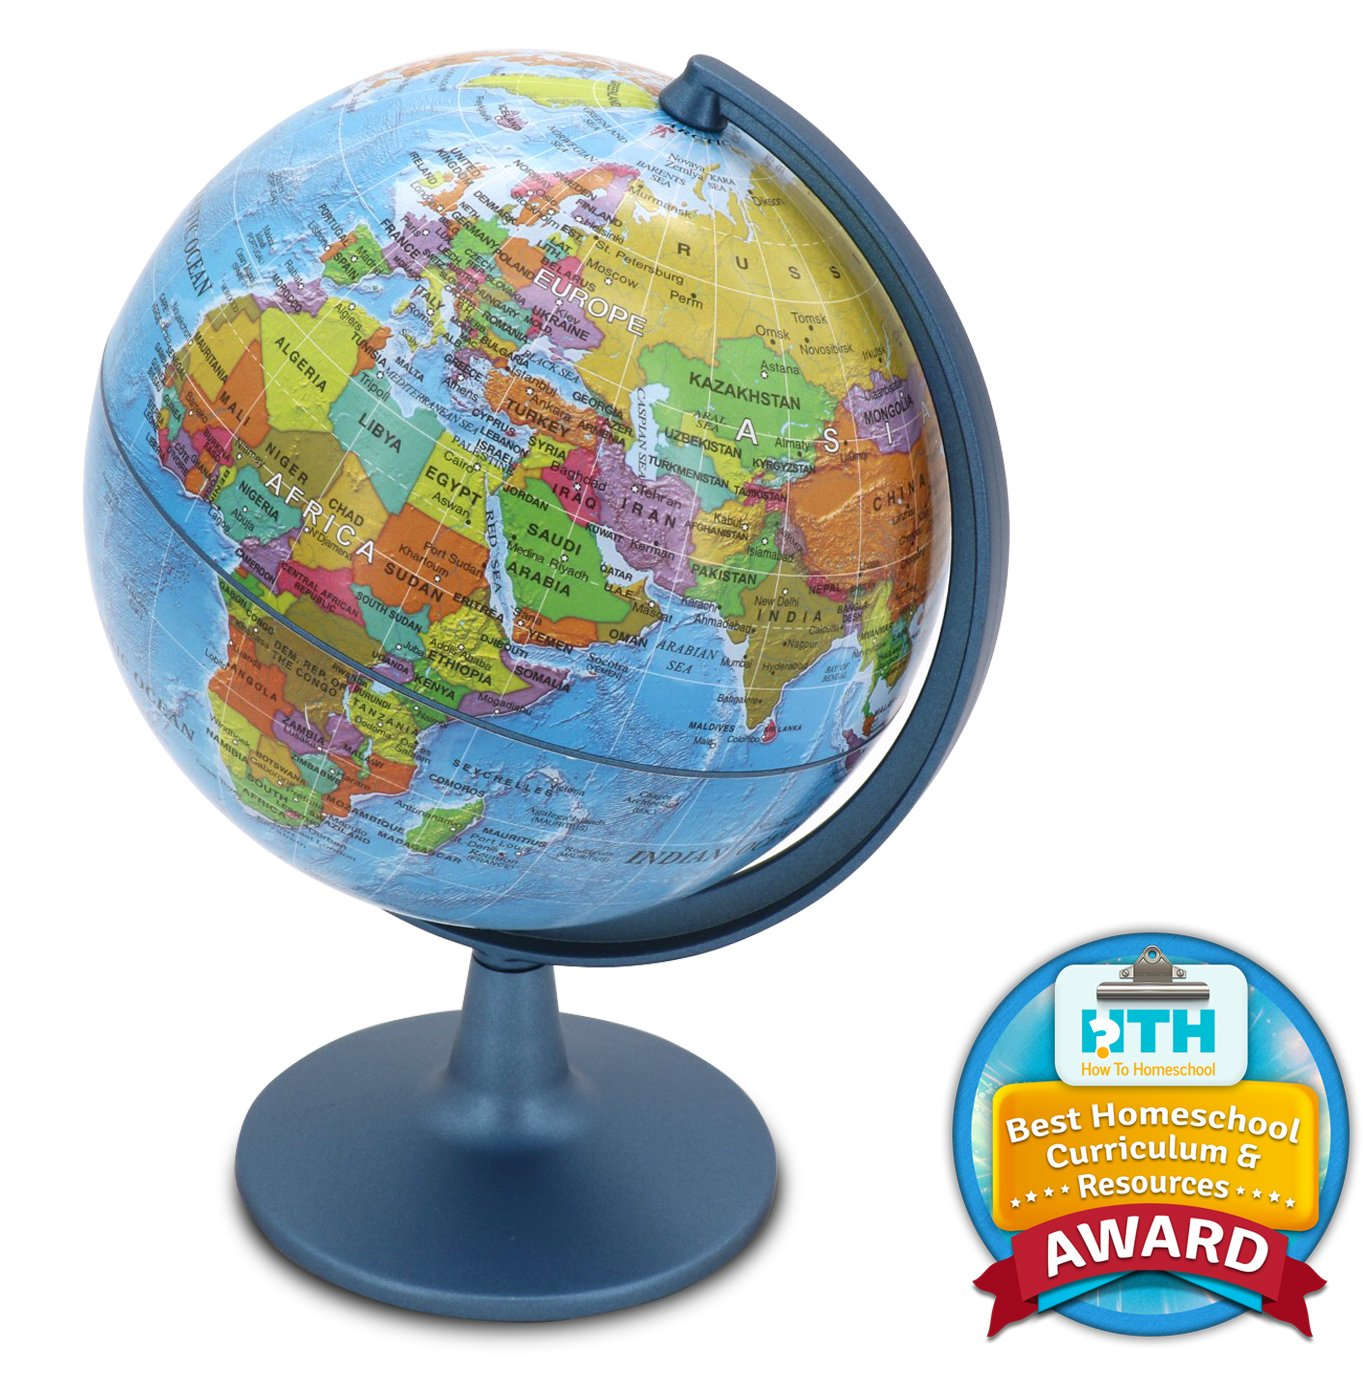 Waypoint Geographic GeoClassic Globe - 6'' (10cm) Blue Ocean with UP-TO-DATE Cartography - 100's of Points of Interest - Well Constructed Weighted Base - Perfect for Educational Reference or Decoration